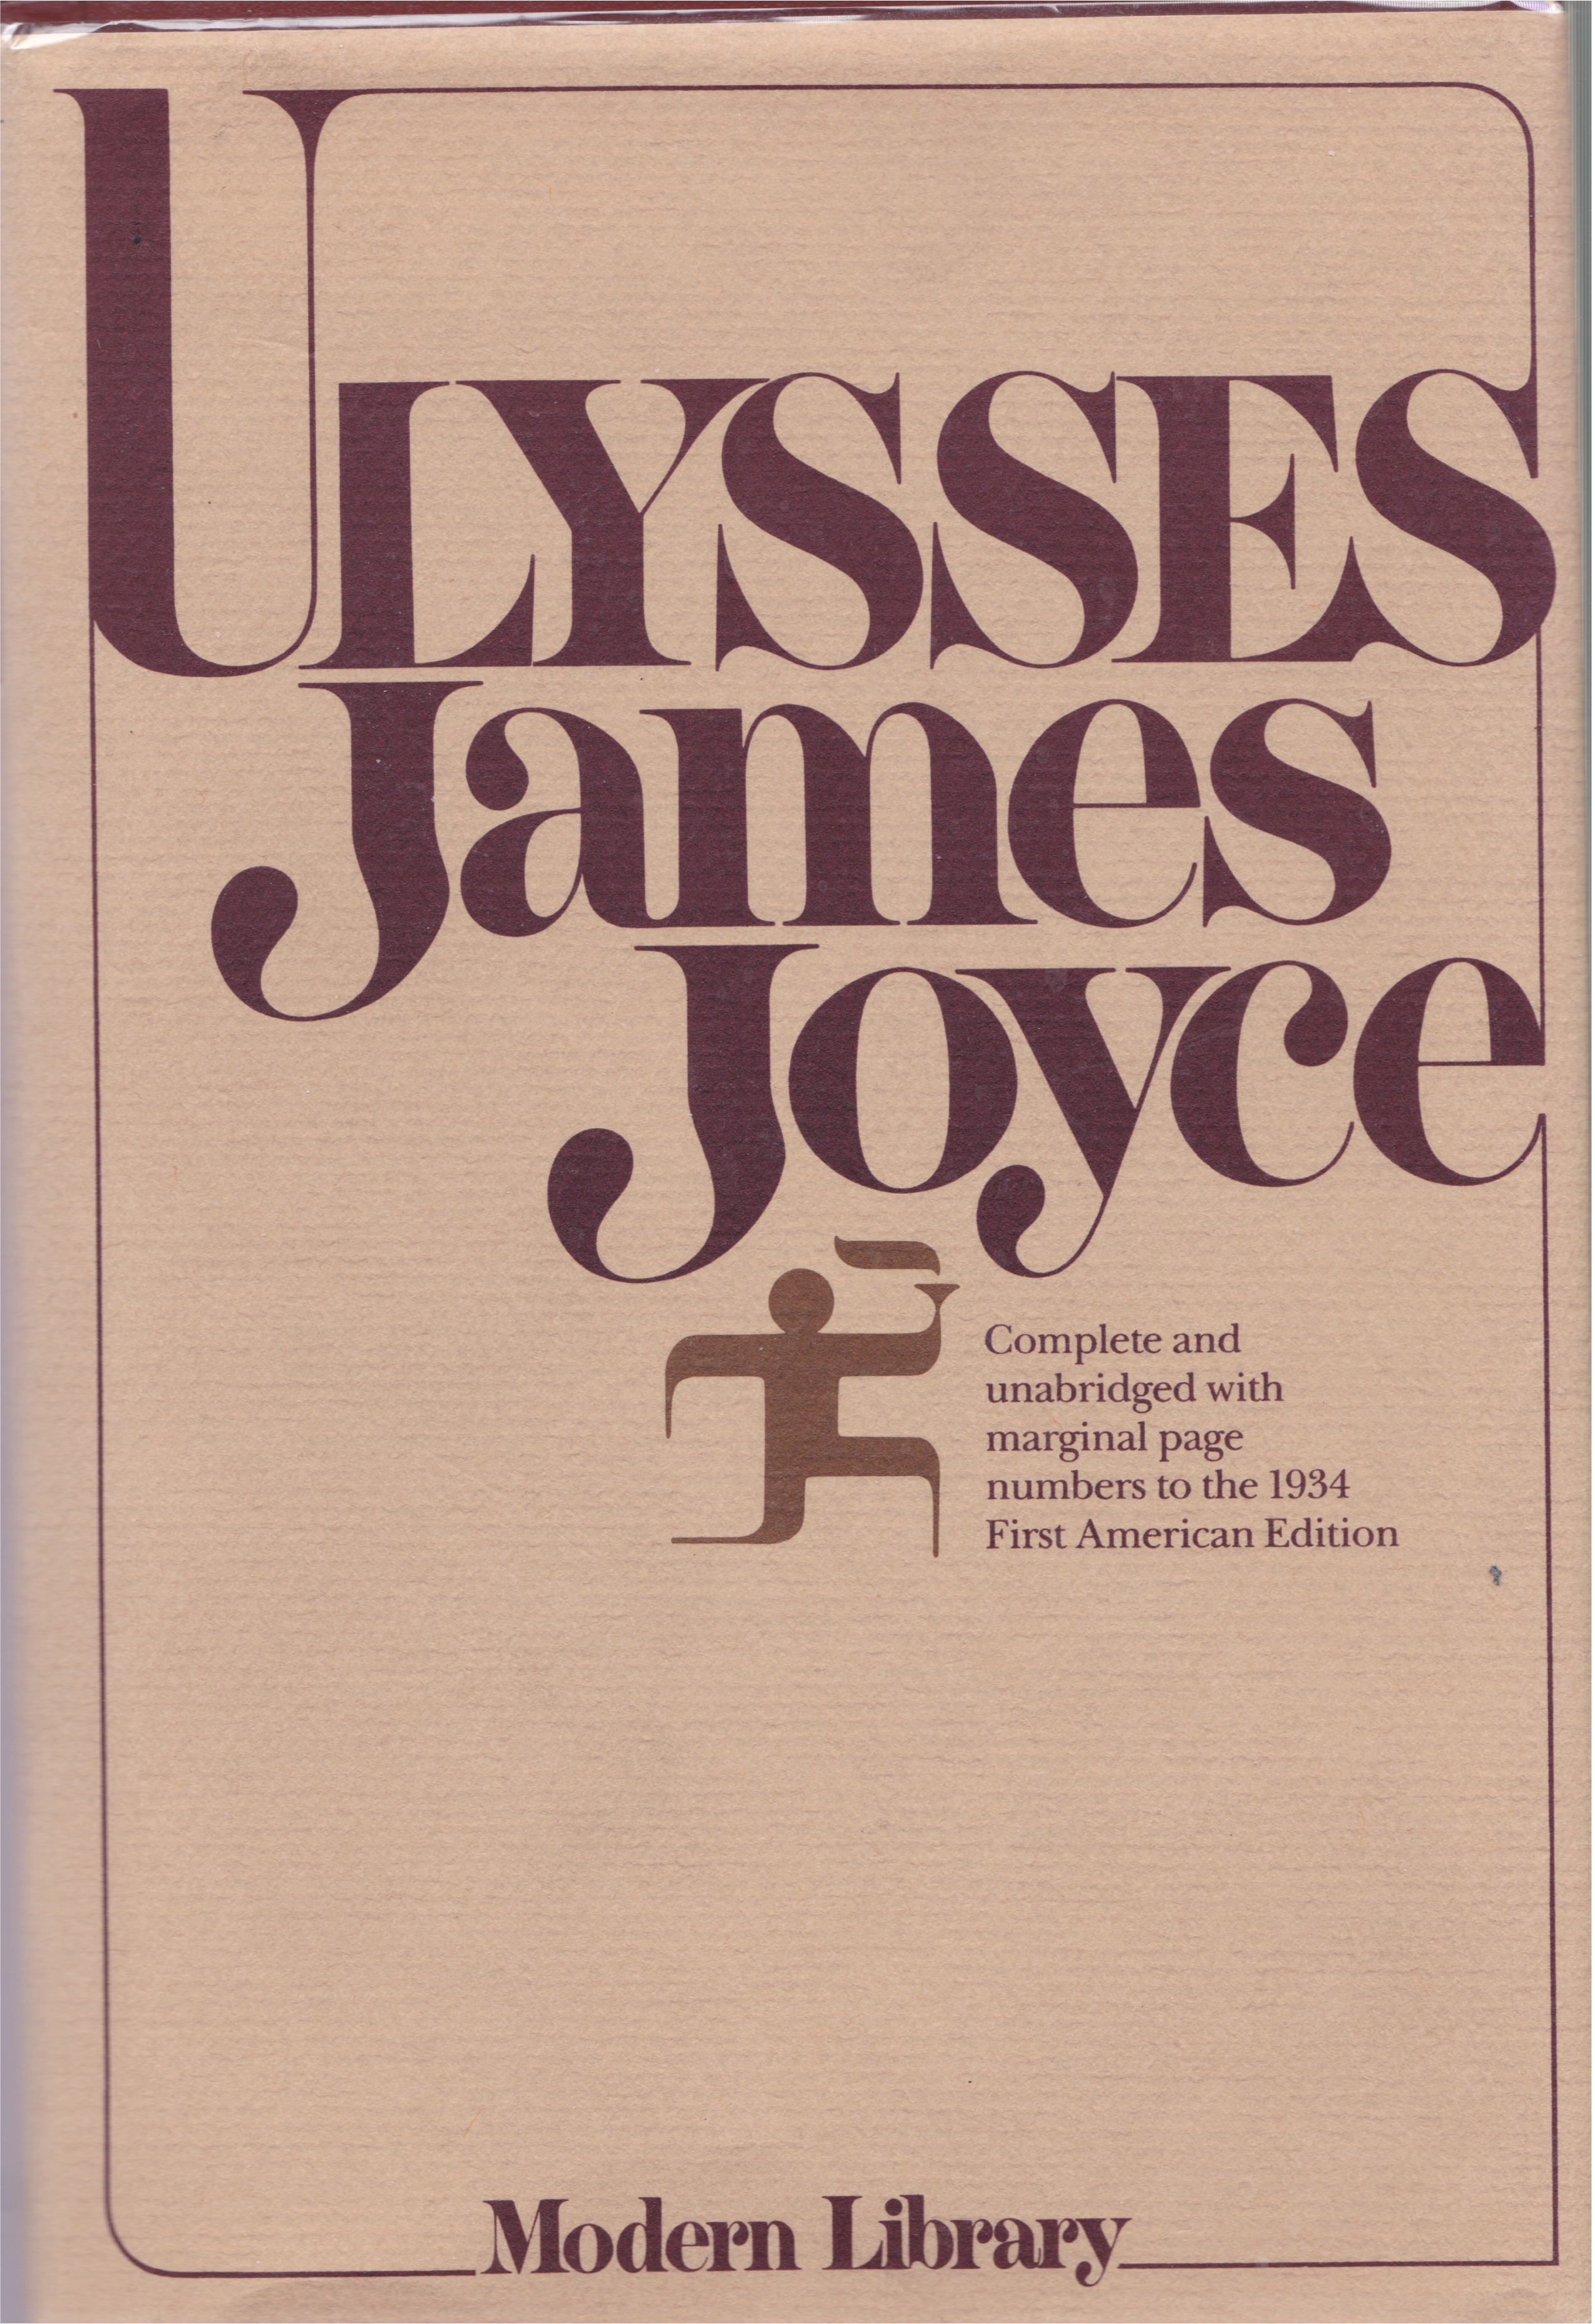 Ulysses By James Joyce Modern Library Fonts In Use